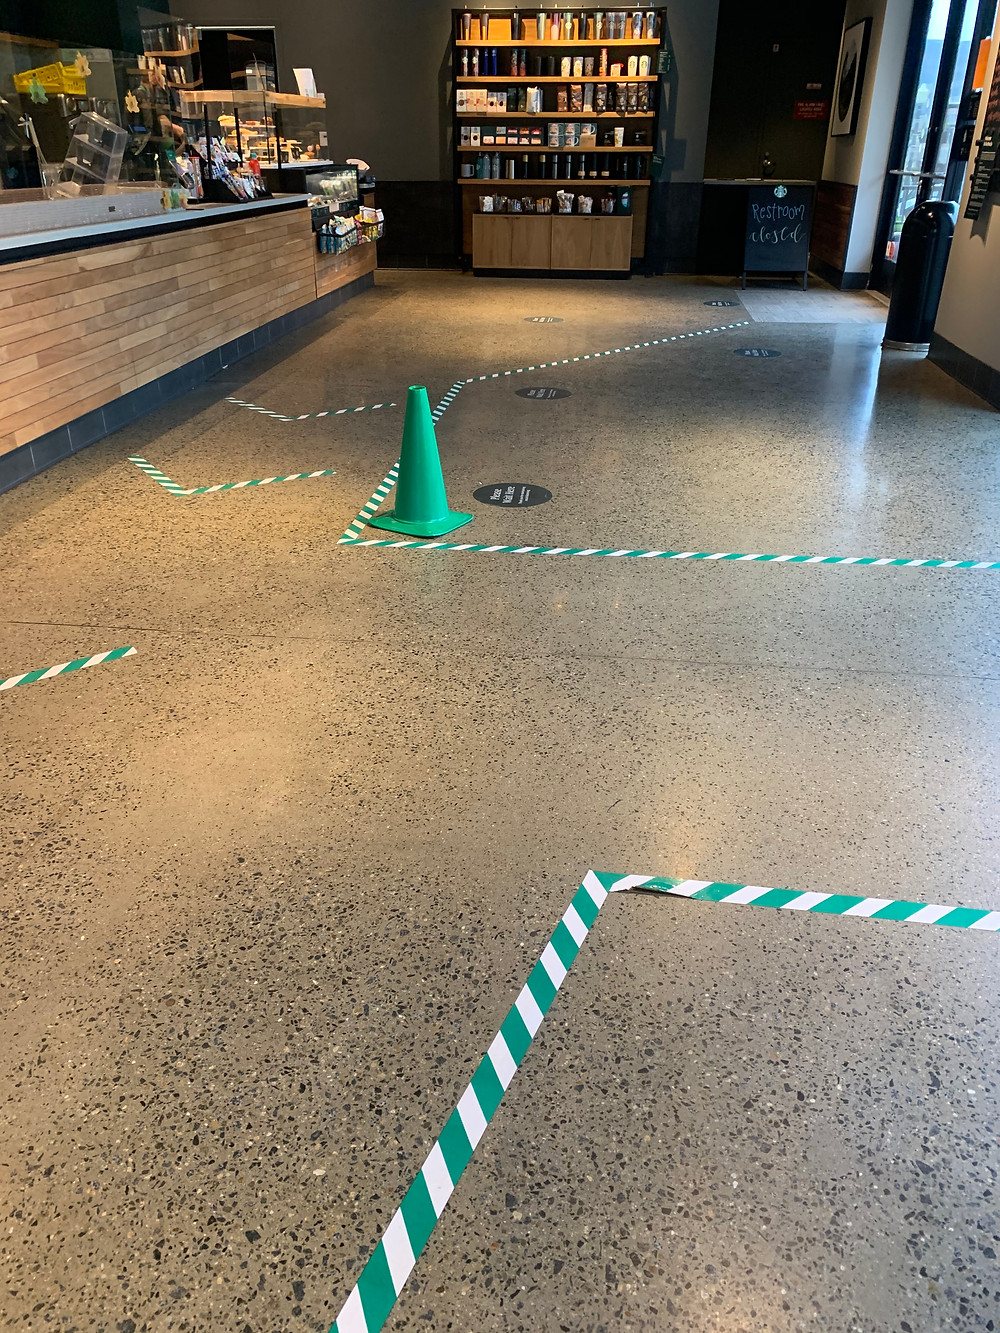 Empty Starbucks store with cones and lines